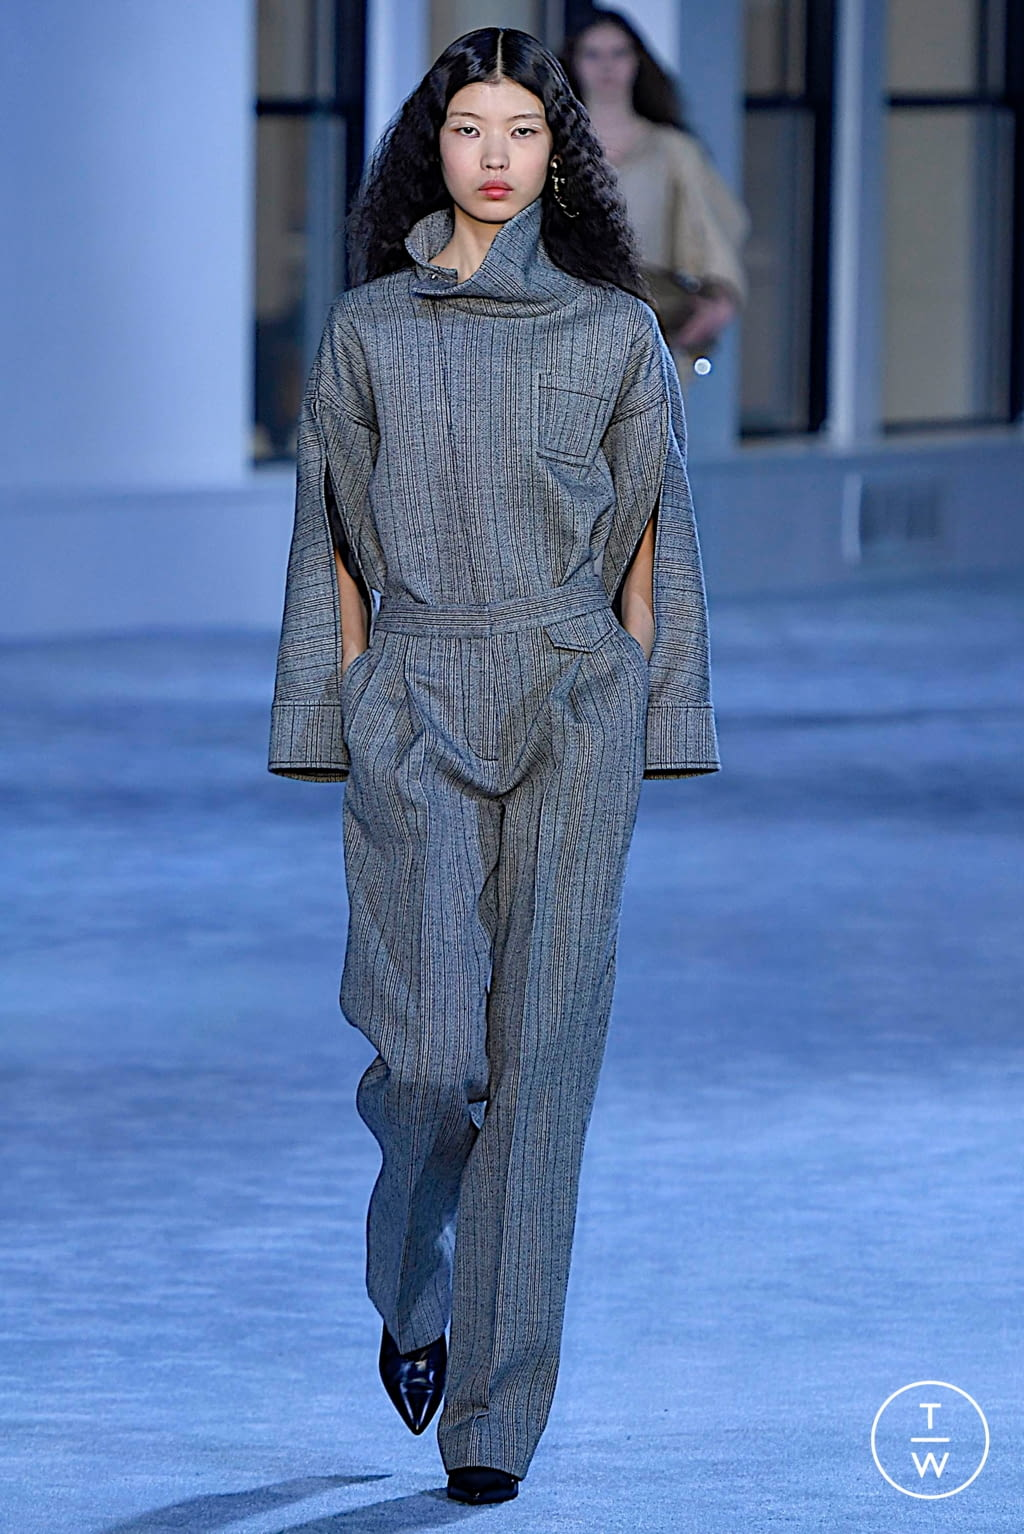 Fashion Week New York Fall/Winter 2019 look 21 from the 3.1 Phillip Lim collection 女装